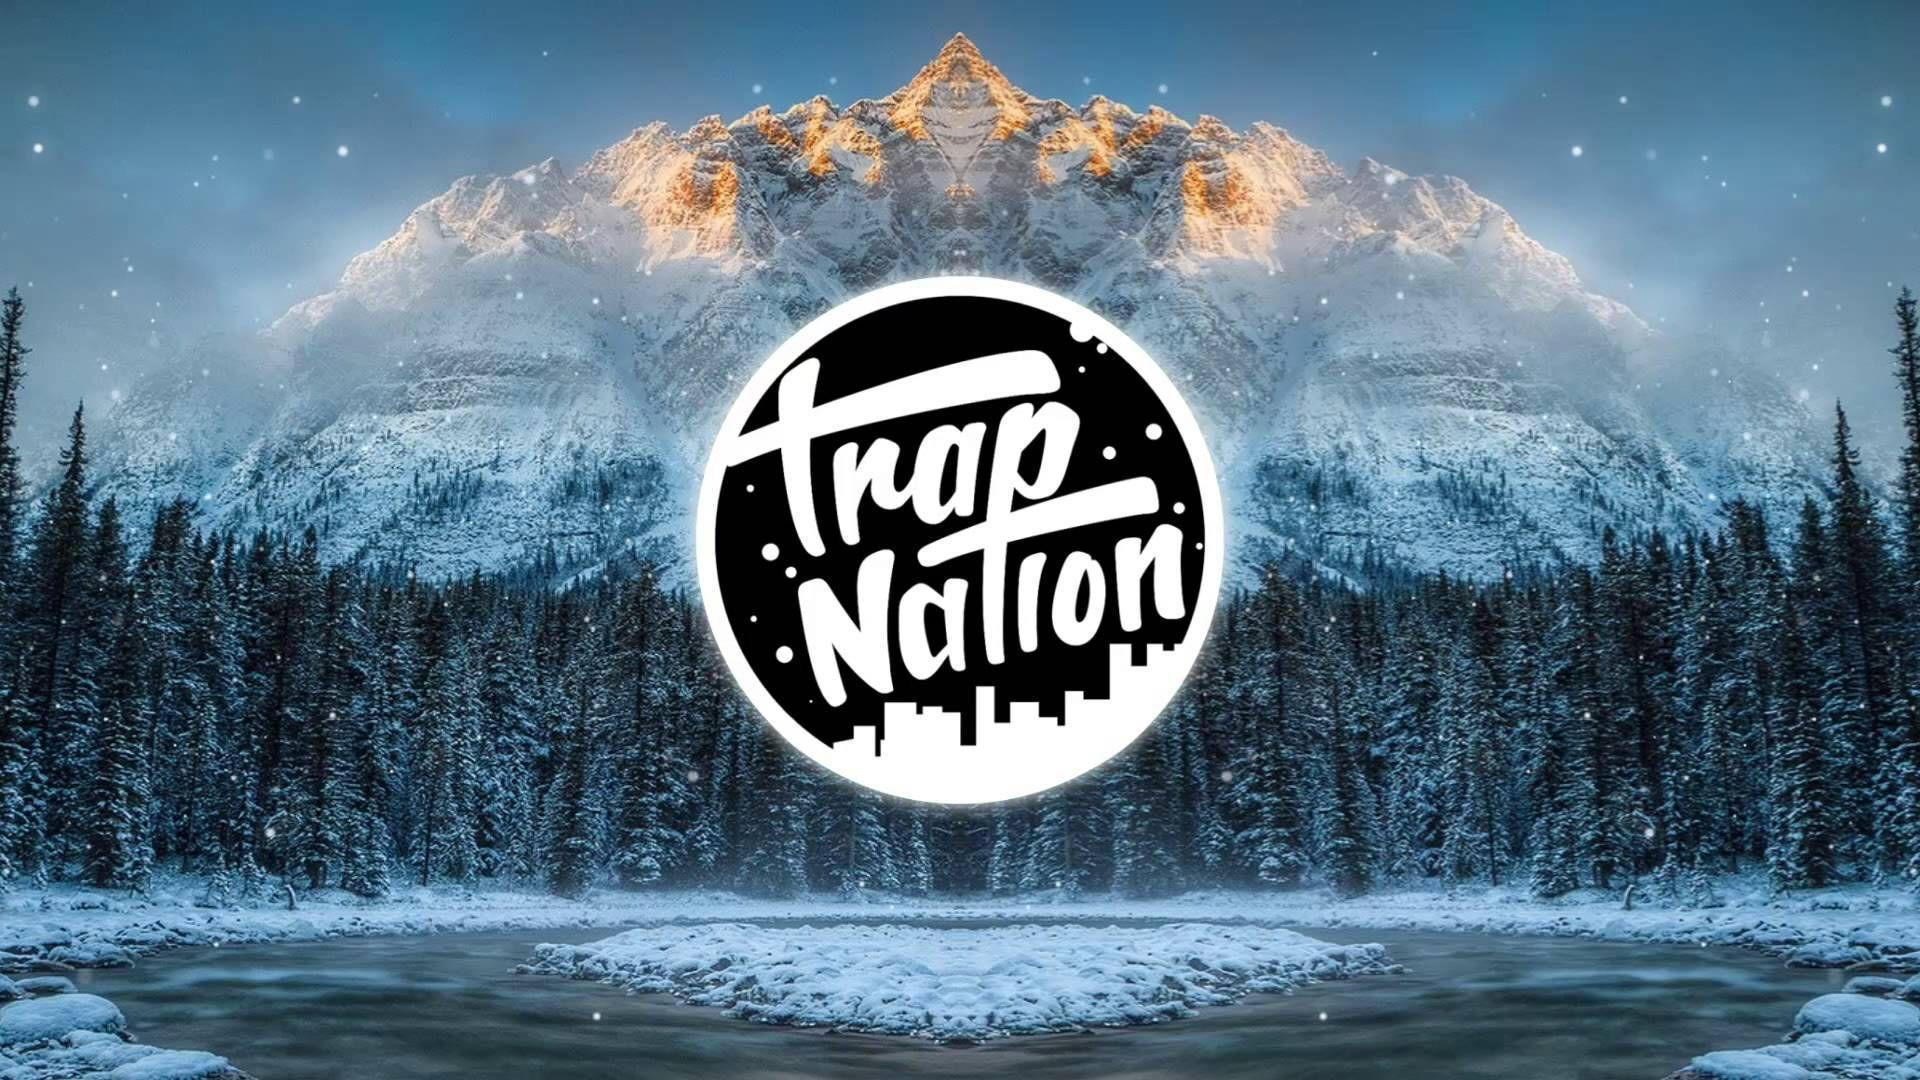 Trap Nation Wallpapers Wallpaper Cave